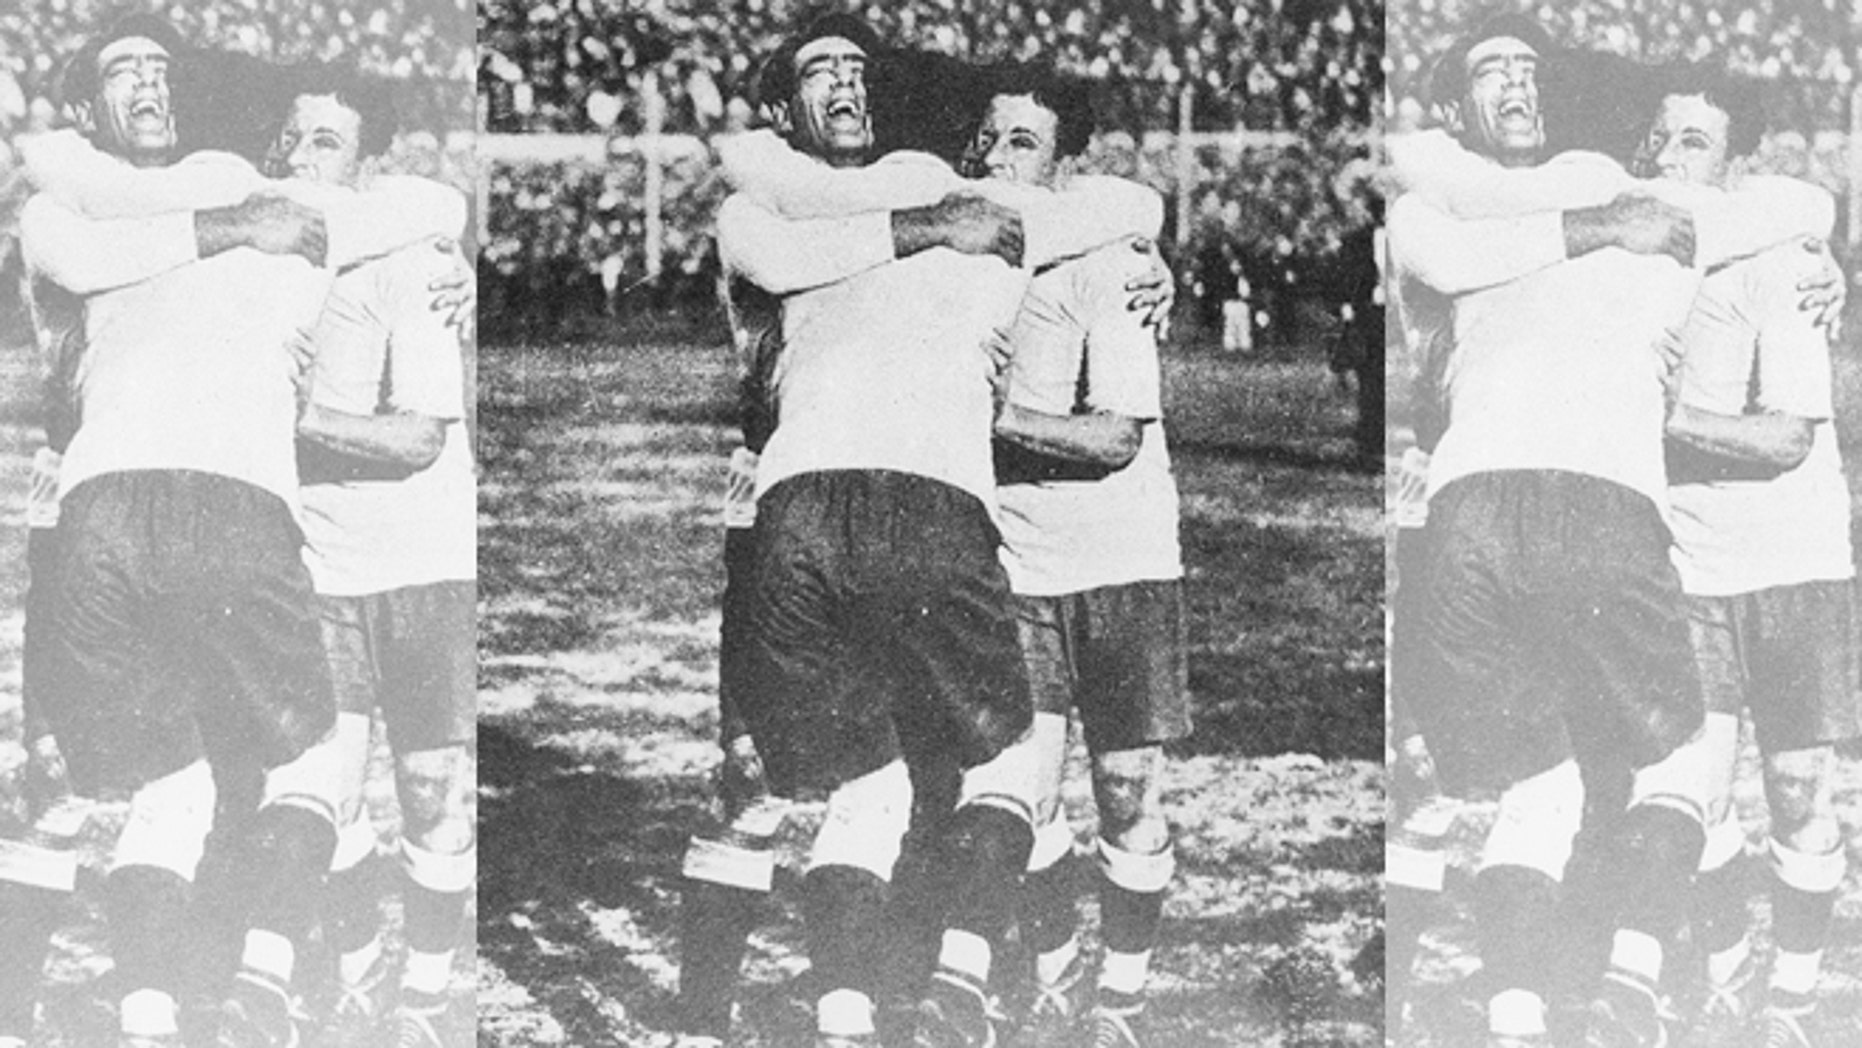 Lorenzo Fernandez, Pedro Cea and Hector Scarone of the Uruguayan national team celebrating winning the first World Cup in 1930 in Montevideo.